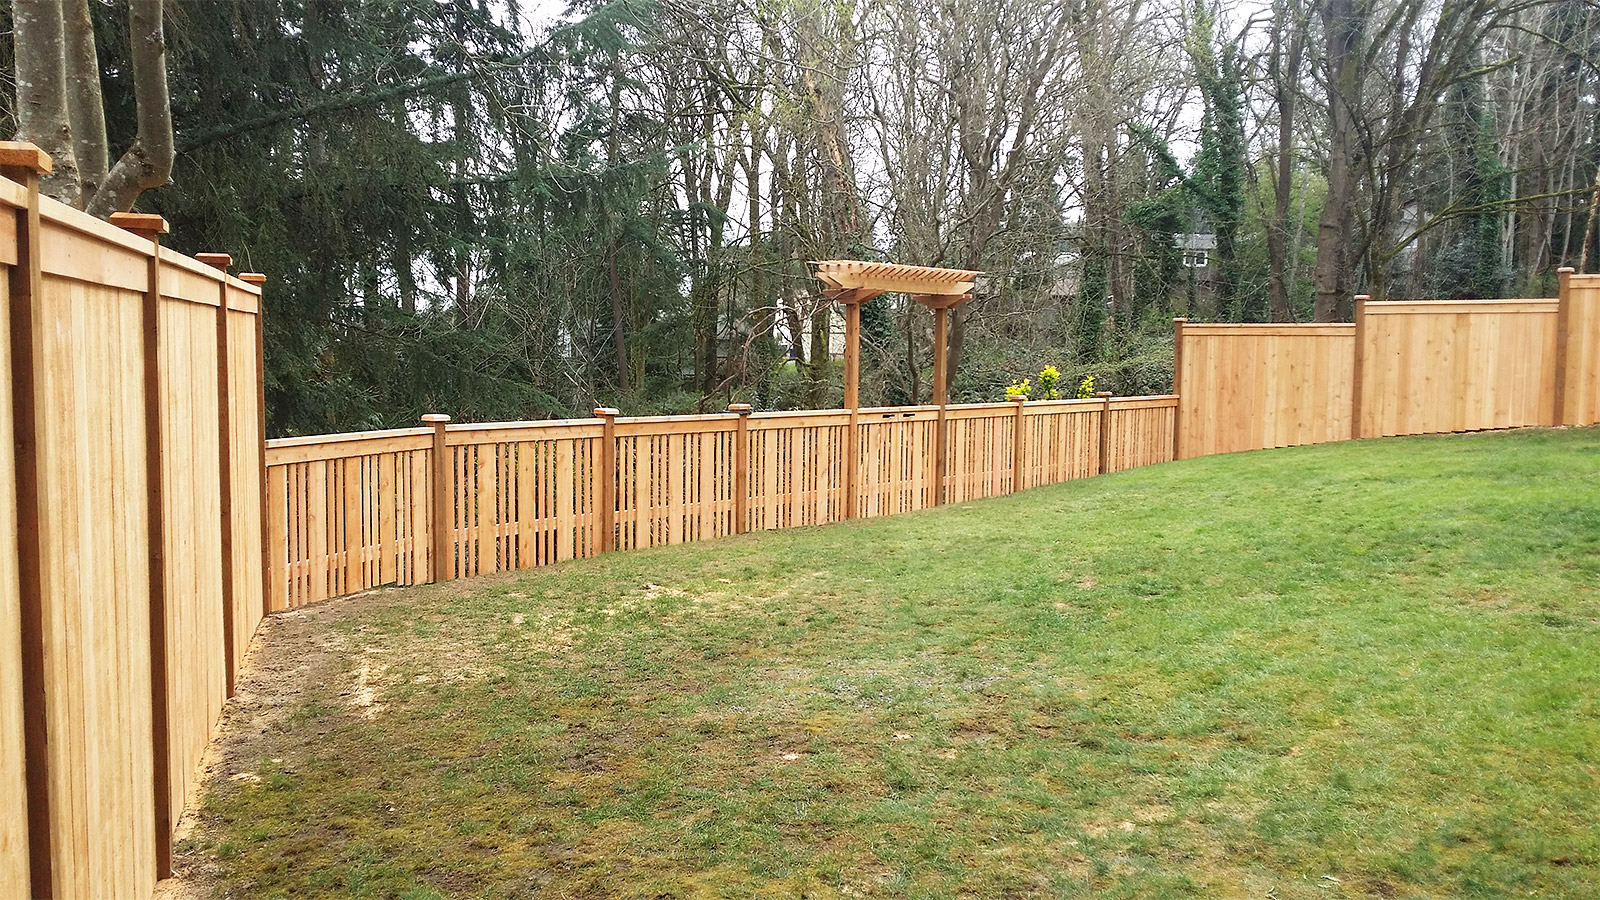 3ft Tall Cedar Fence with Alternating Boards, Caps, and Trim